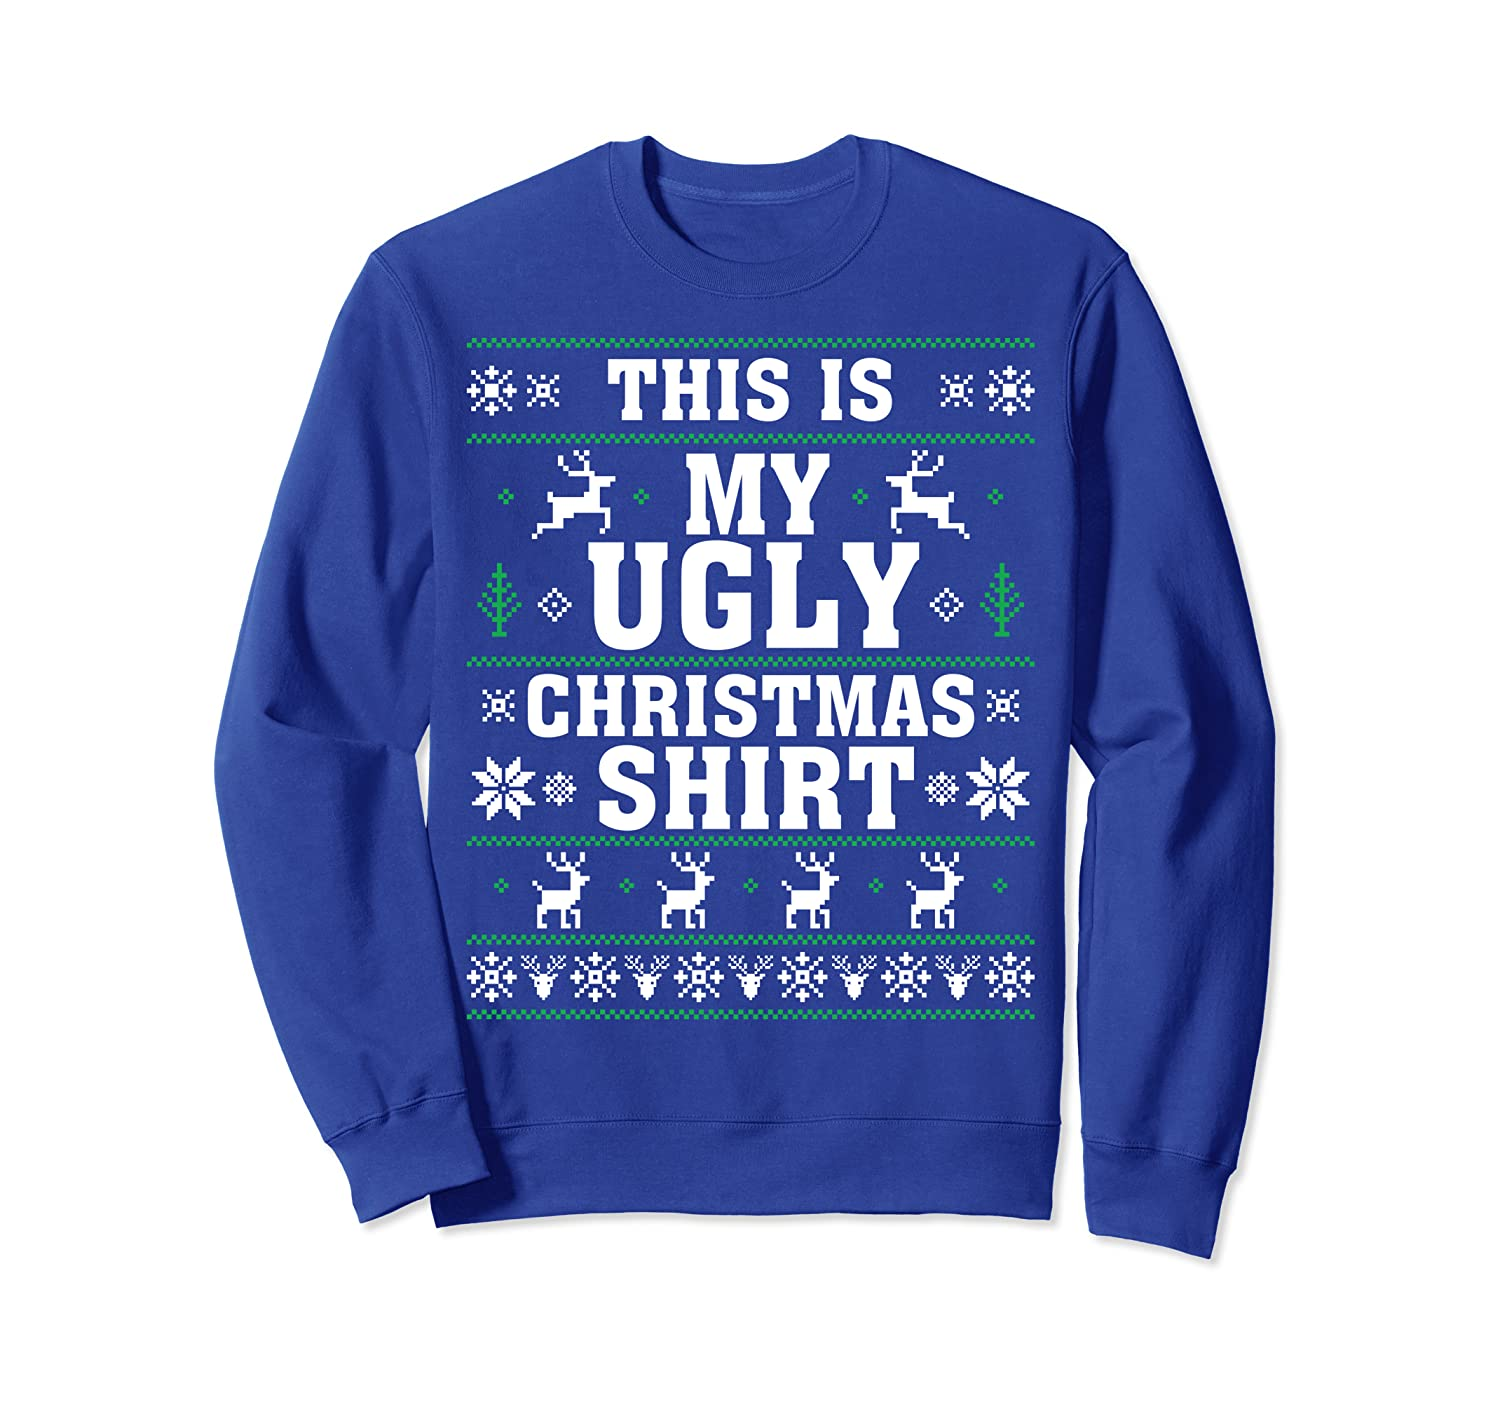 This Is My Ugly Christmas Shirt For Men Women Kids Funny Sweatshirt